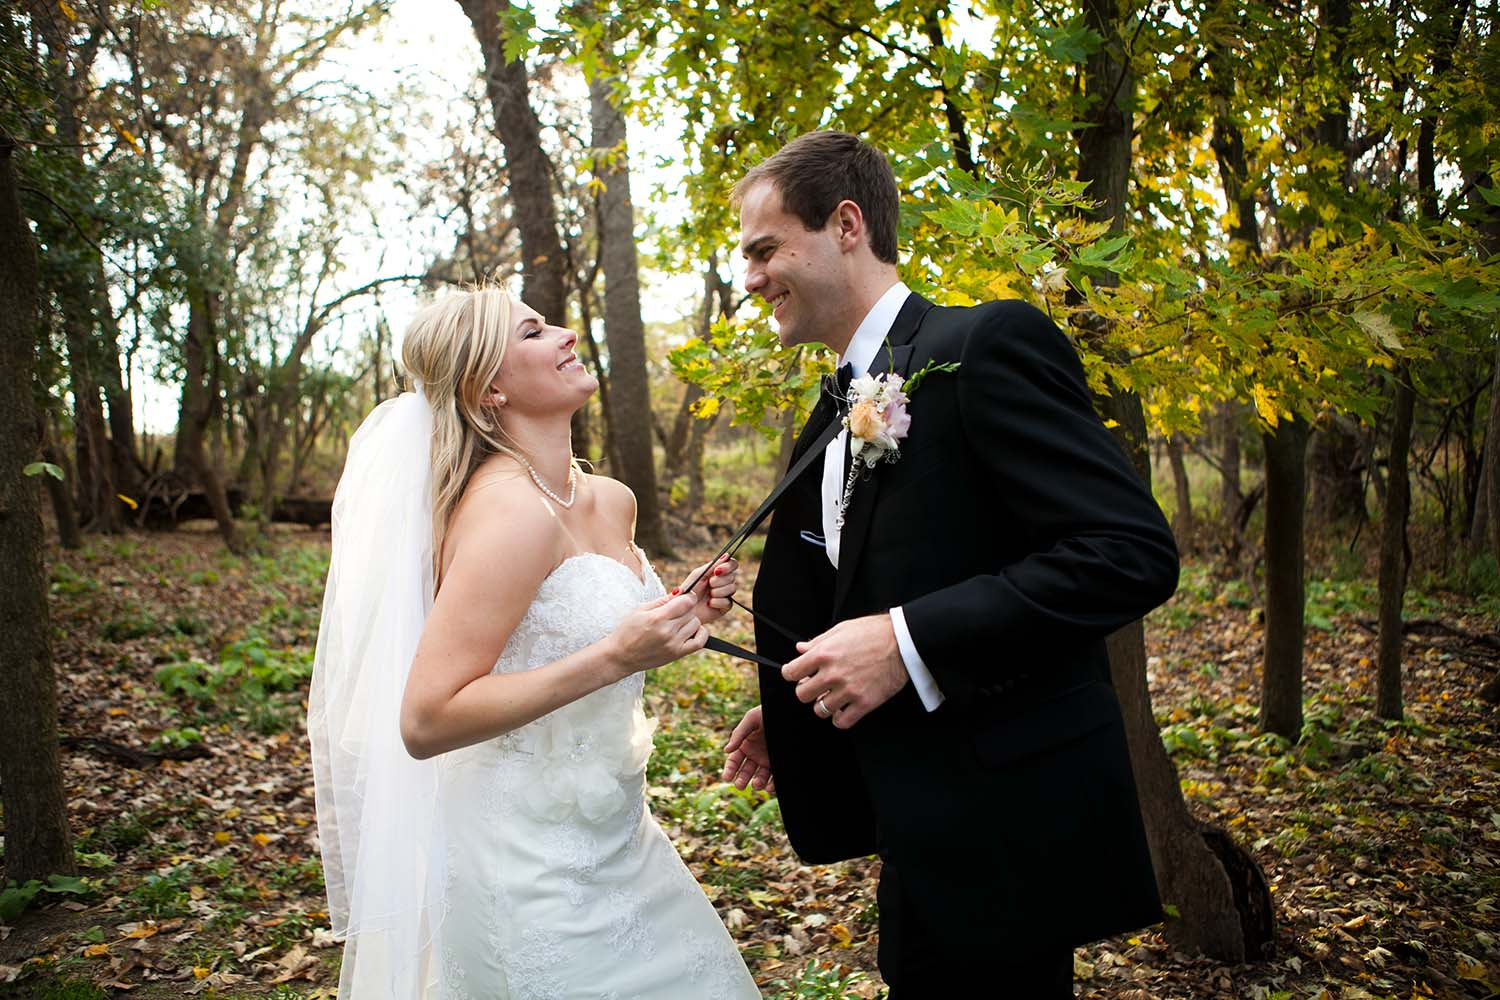 Kristina & John Married, bride pulling on grooms suspenders, fun wedding photography, cute wedding photo, fall, autumn, October Wedding